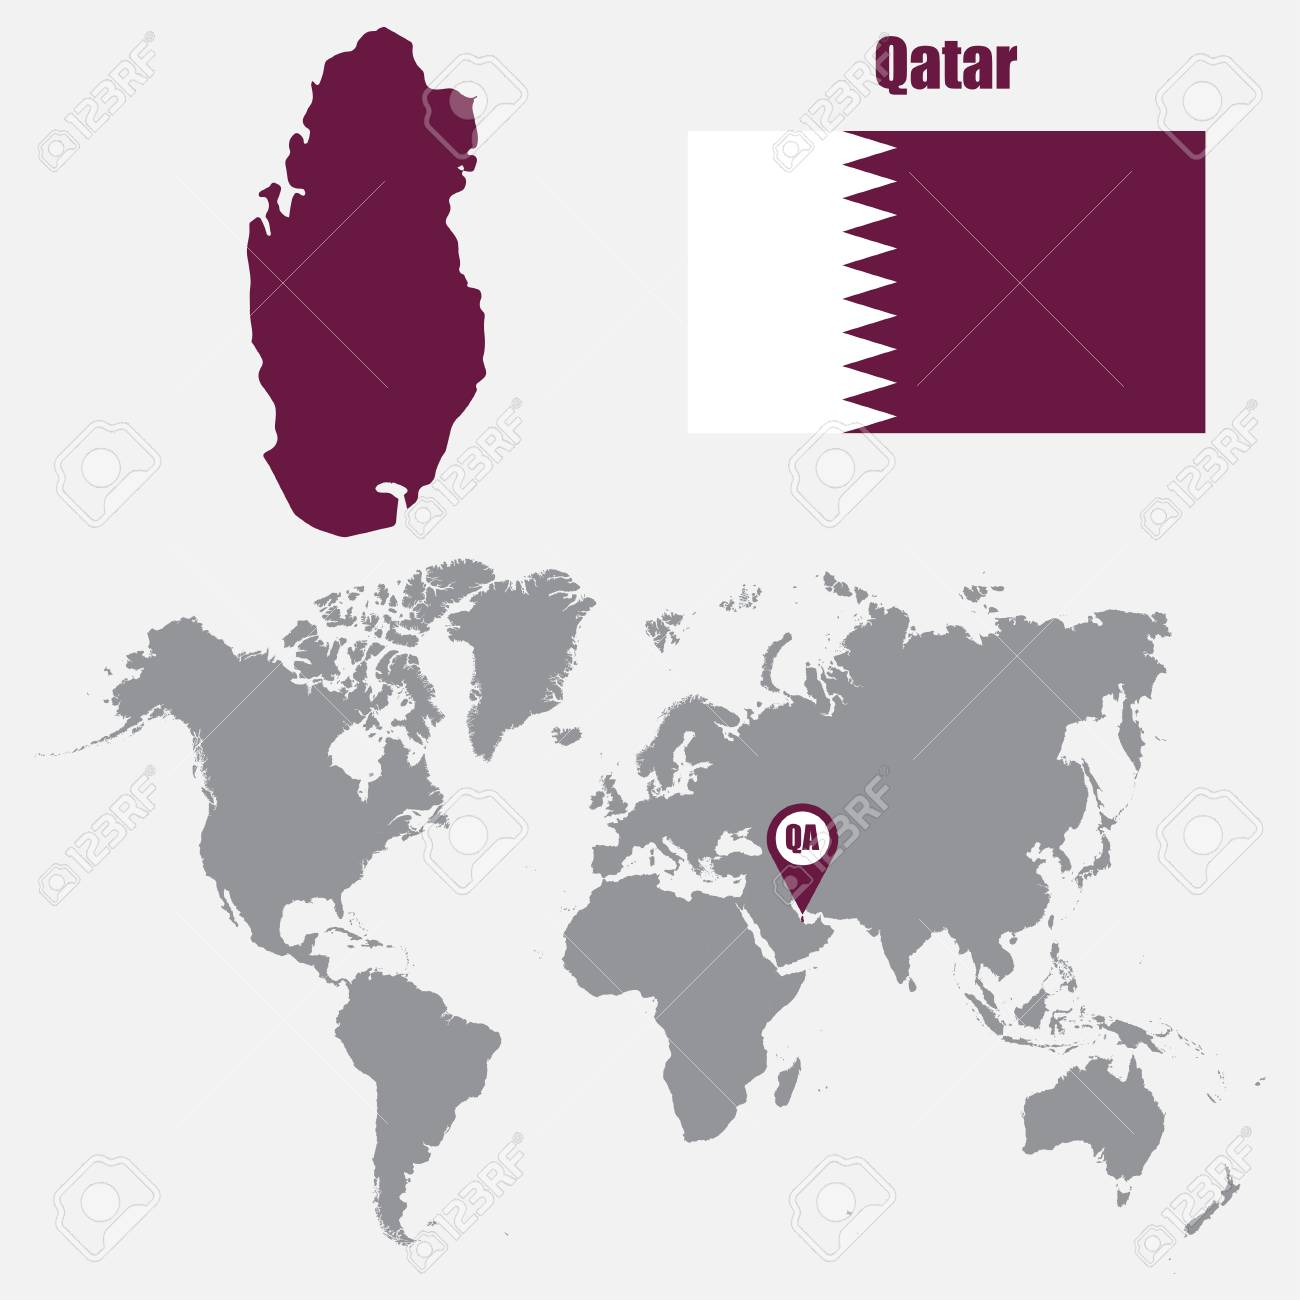 Qatar map on a world map with flag and map pointer. Vector illustration